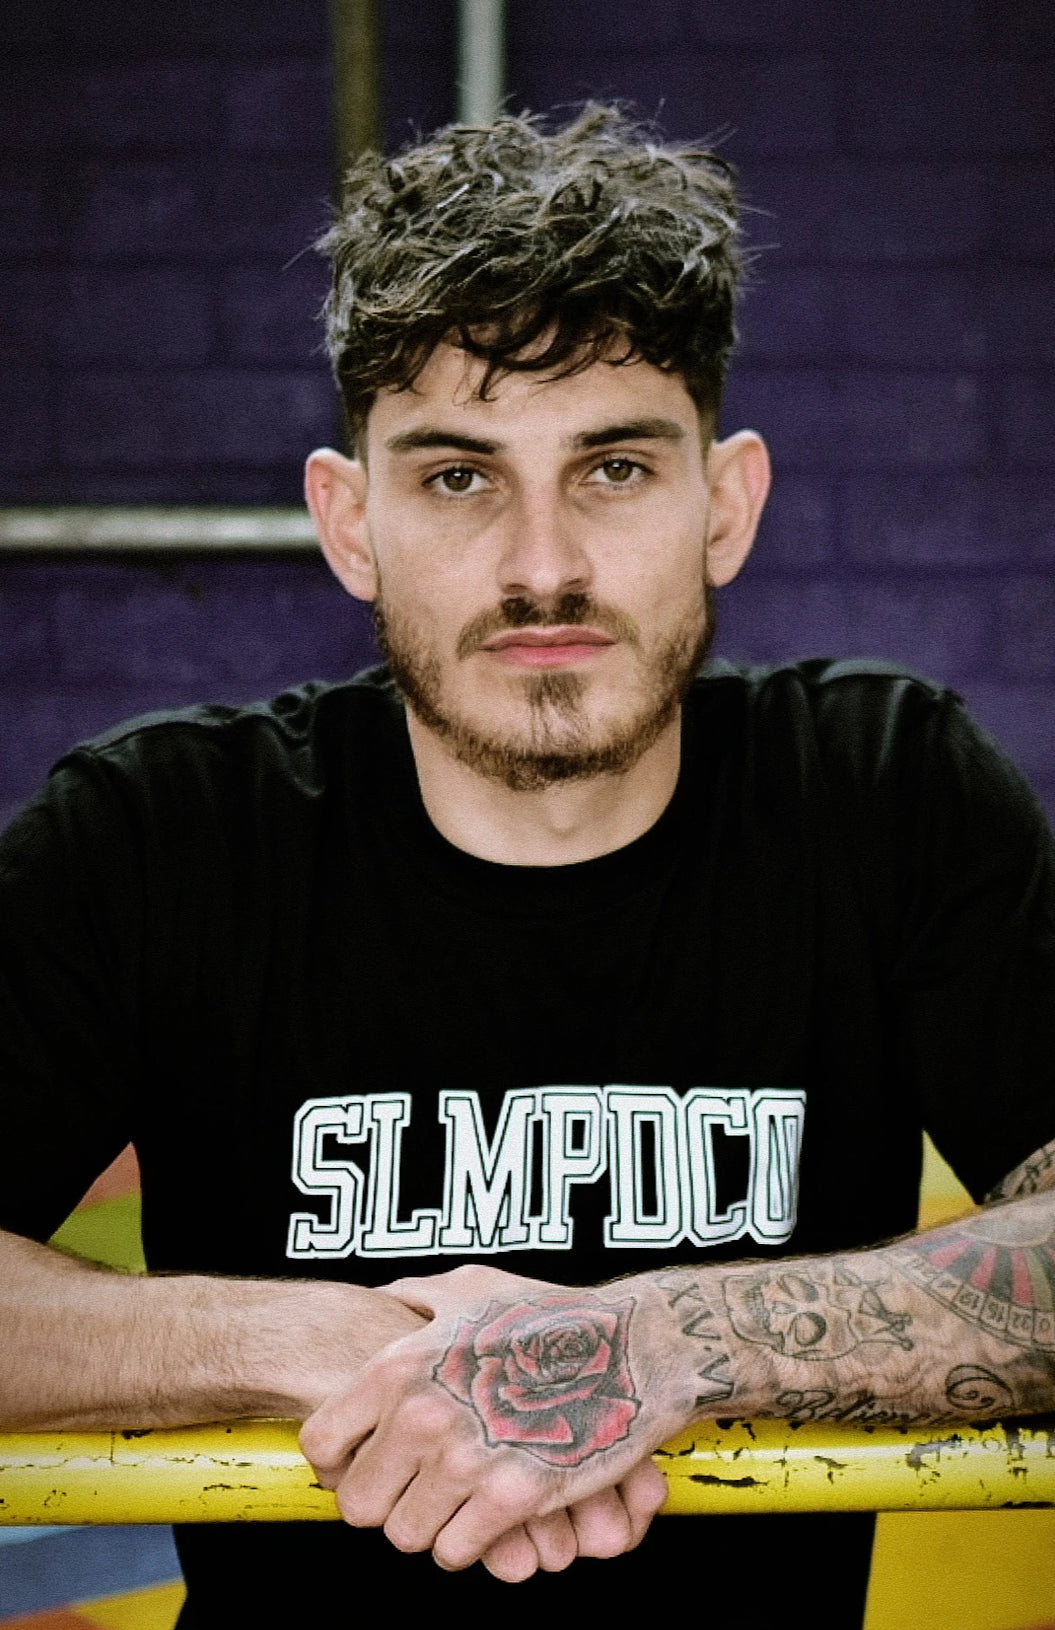 SLMPD DOMINO T SHIRT FROM STREETWEAR BRAND SLMPD CO STREET WEAR GARMENT CLOTHING APPAREL SLMPDCO BLACK TEE DIGBETH BIRMINGHAM STICKERS SLAPS CUSTOM CAPS SNAPBACK HEADWEAR CAP HAT TEE SWEATSHIRT PATCH TRACKSUIT BRIXTON SWEATPANTS PANTS JOGGERS